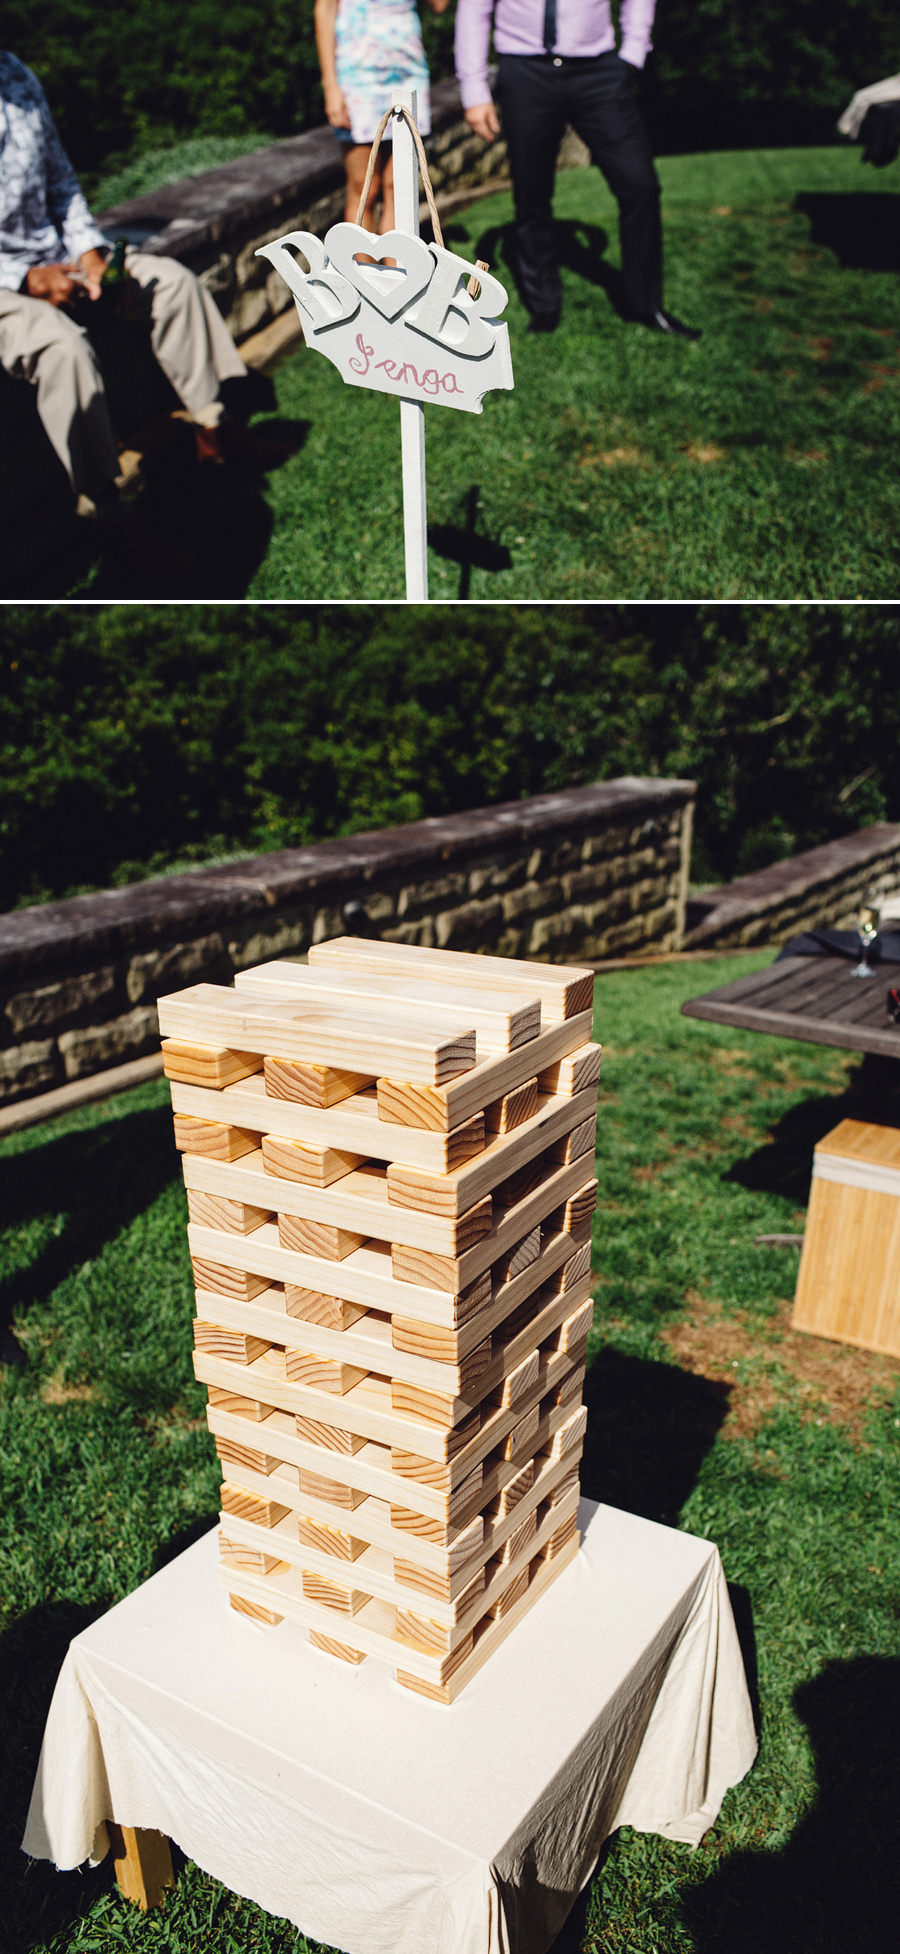 Lawn Games Wedding Photographer: Ceremony: Giant Jenga